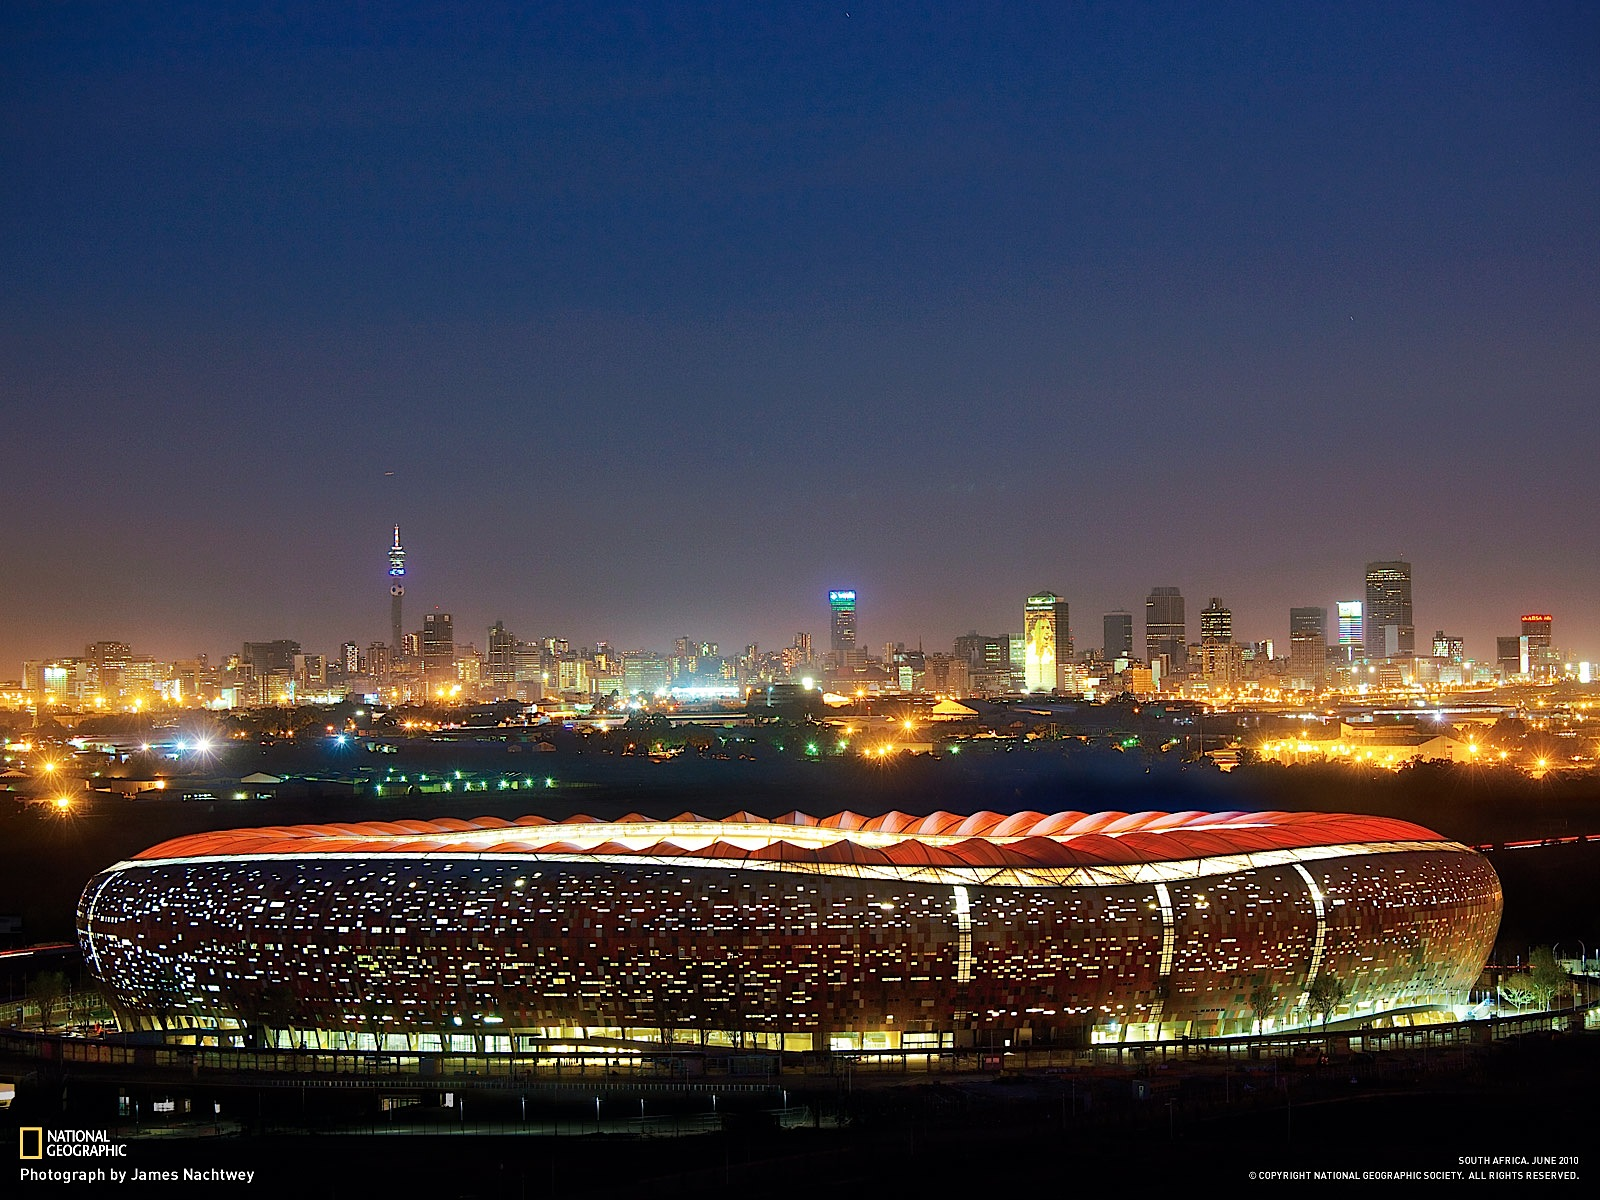 Jozi stadium at night awesome wallpaper 2oceansvibe jun10wallpaper 11600g thecheapjerseys Gallery